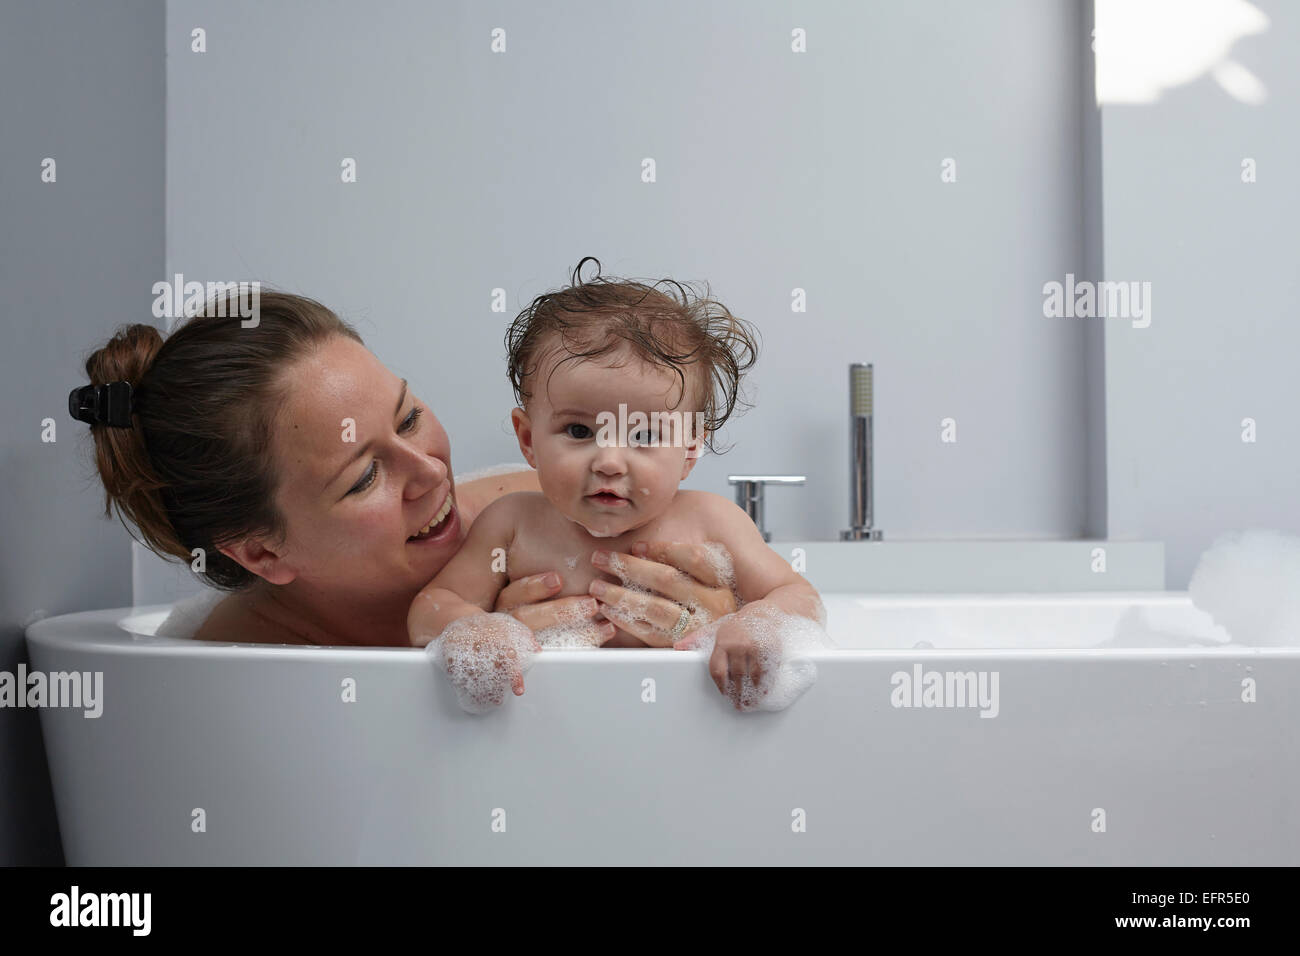 Mother and baby girl in bathtub - Stock Image